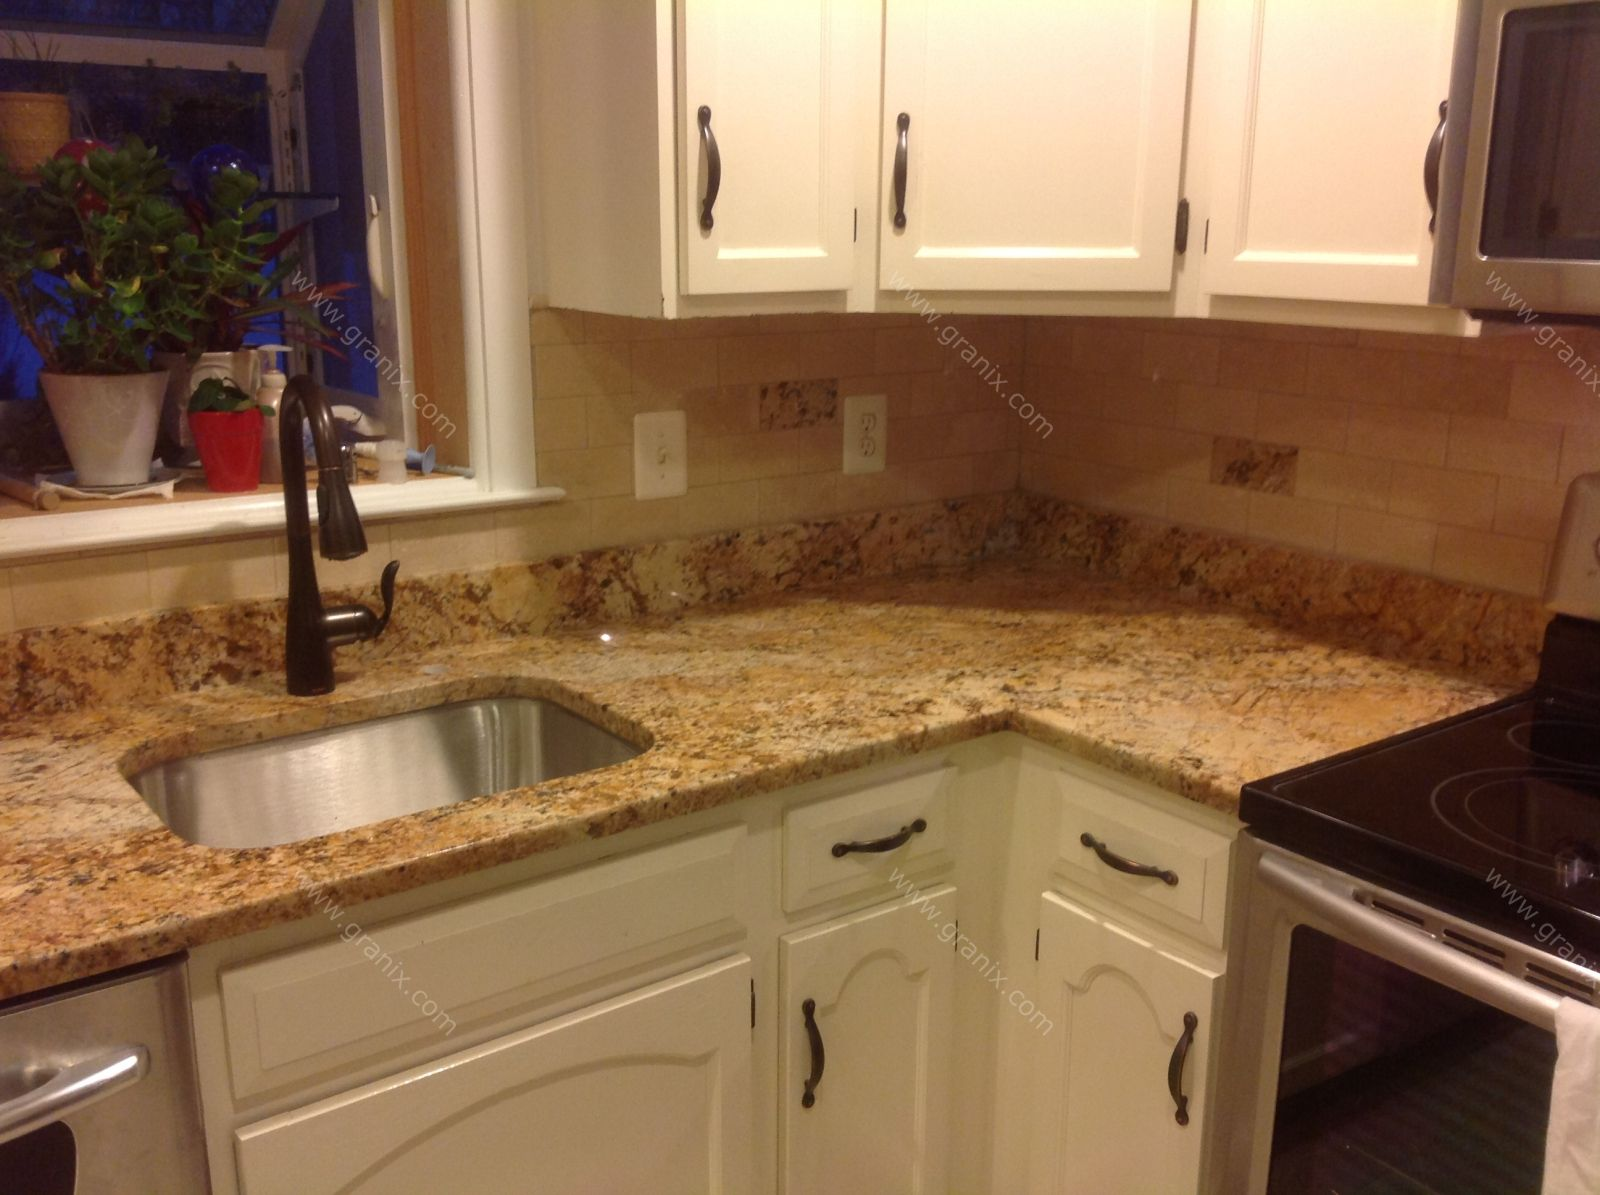 Mac S Before After Solarius Granite Countertop Backsplash Solarius Granite